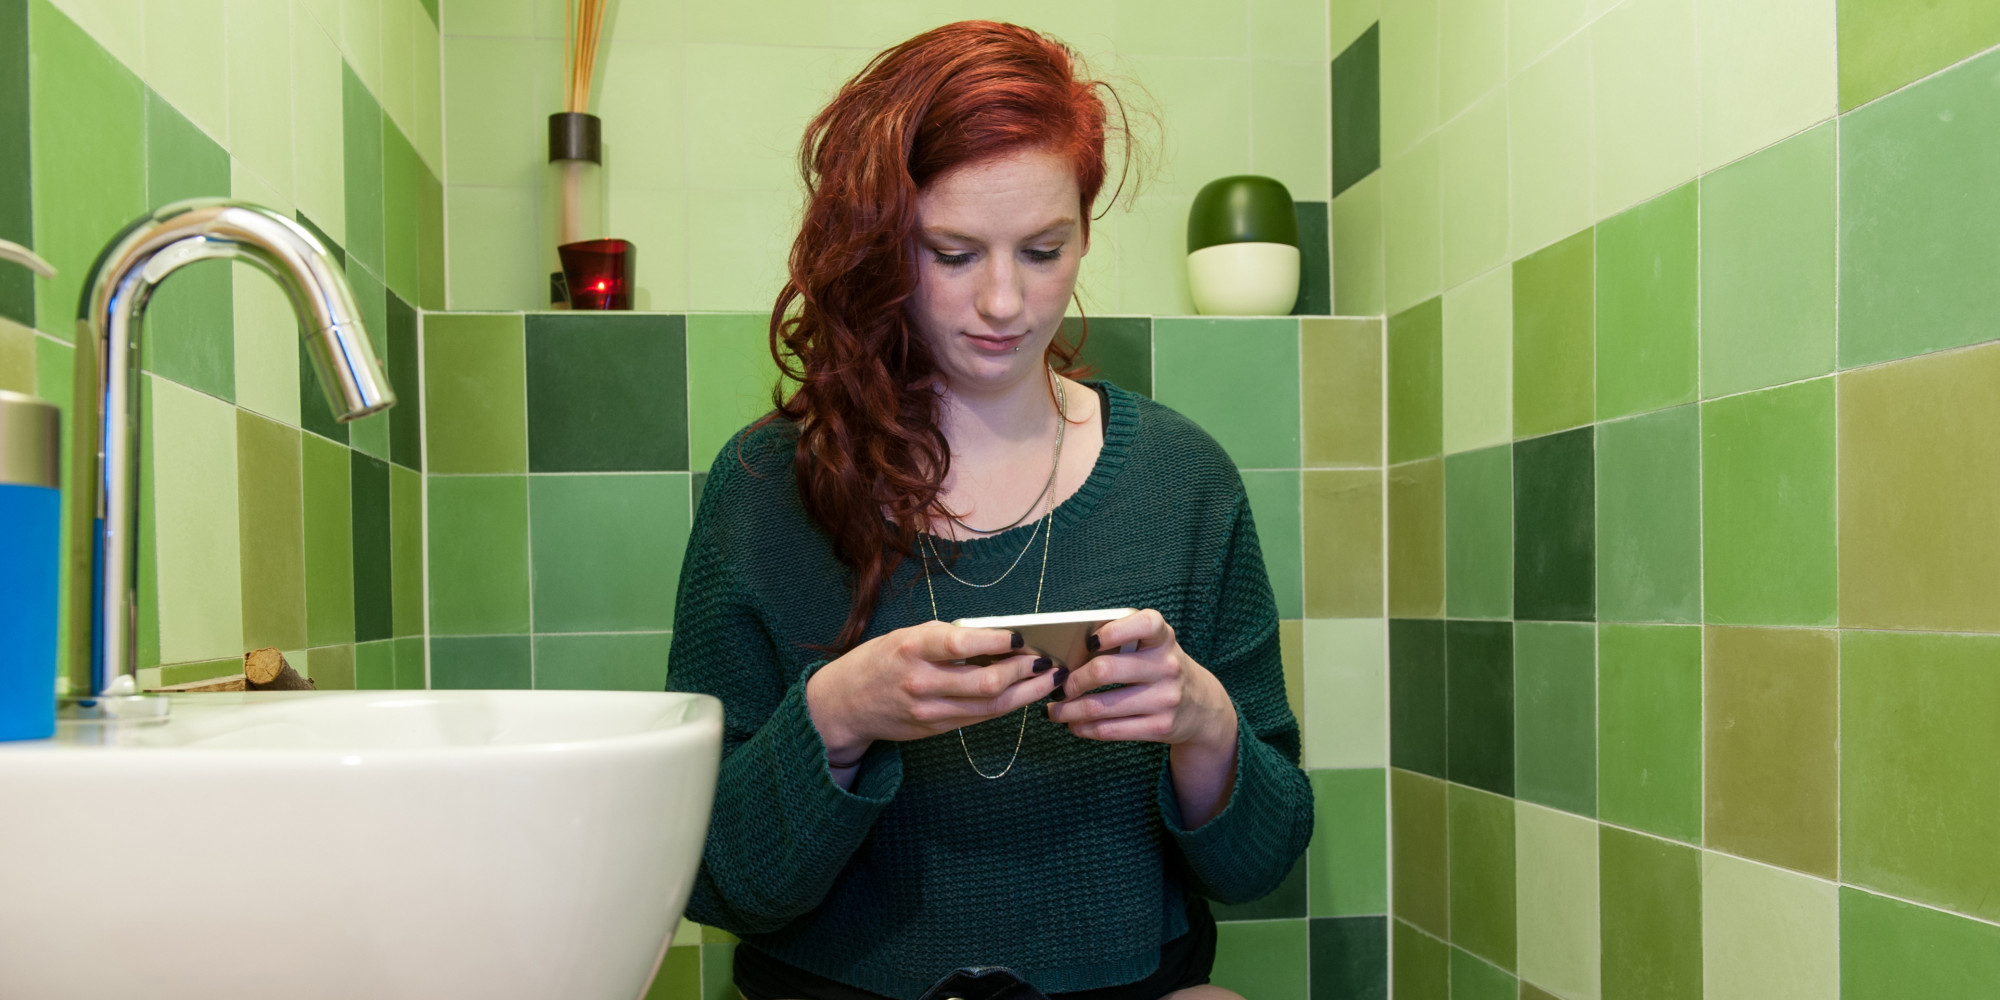 Young woman checking social media on the toilet